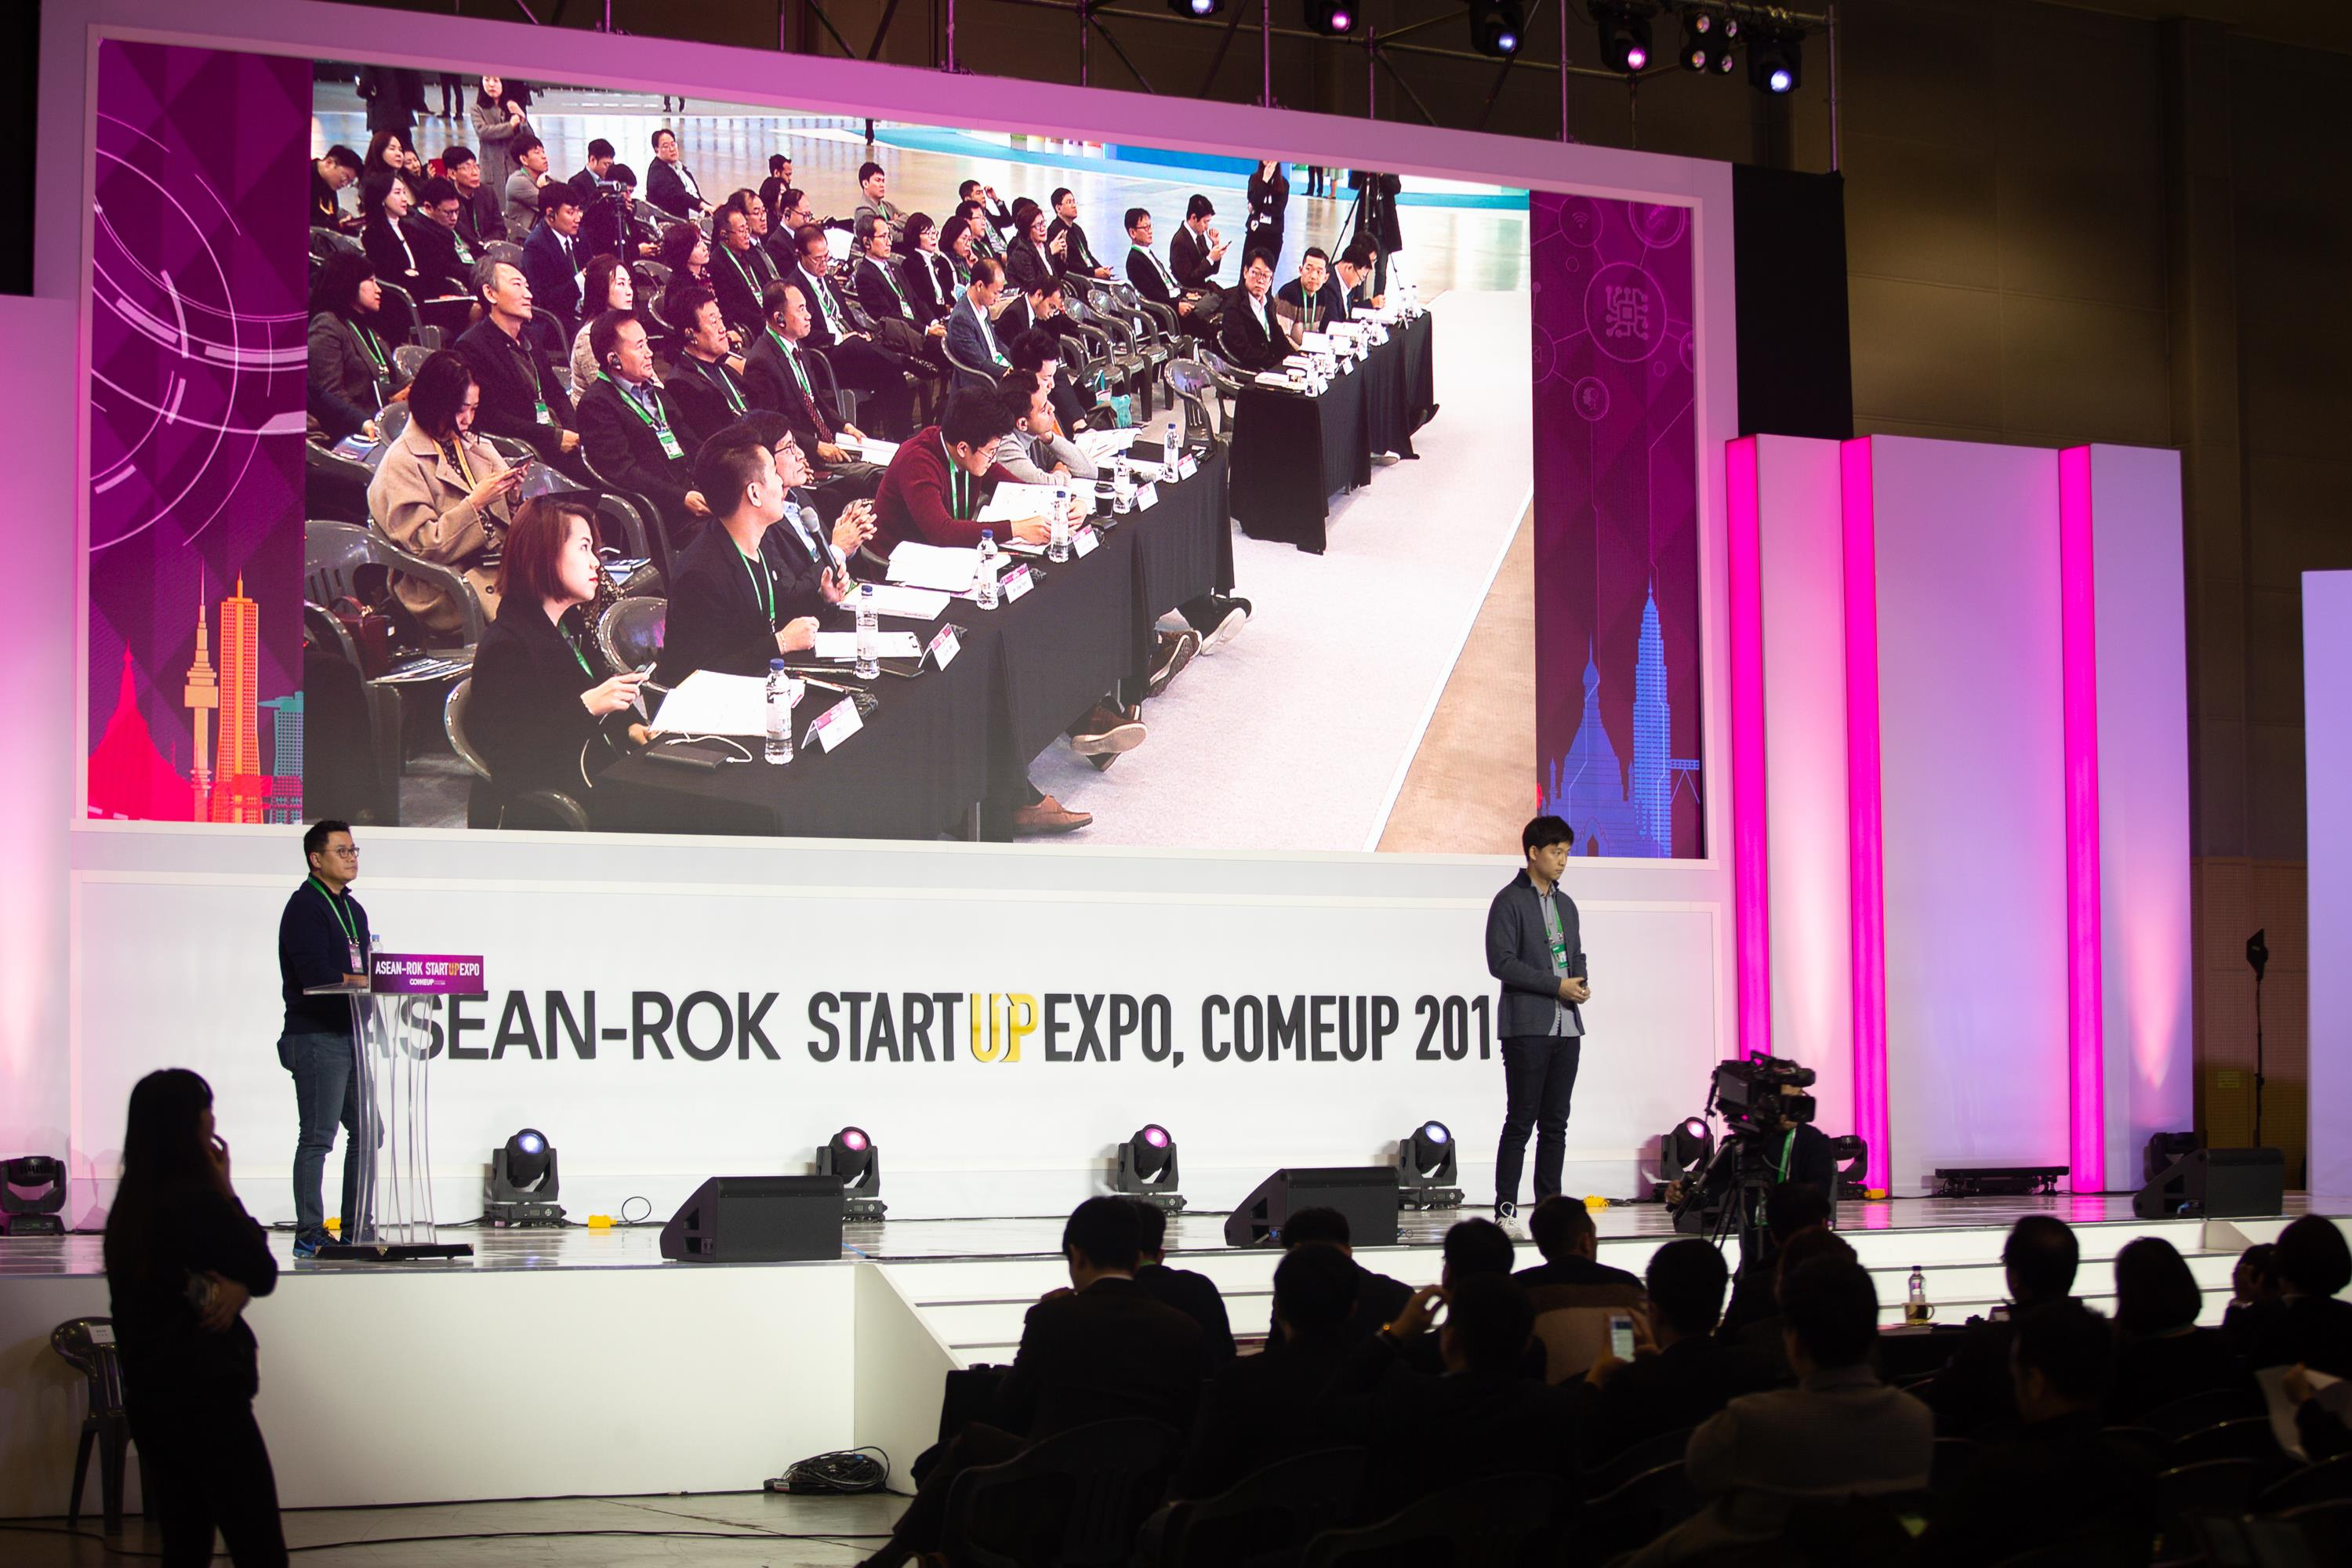 ASEAN-ROK Startup Expo, Come up 2019 PHOTO